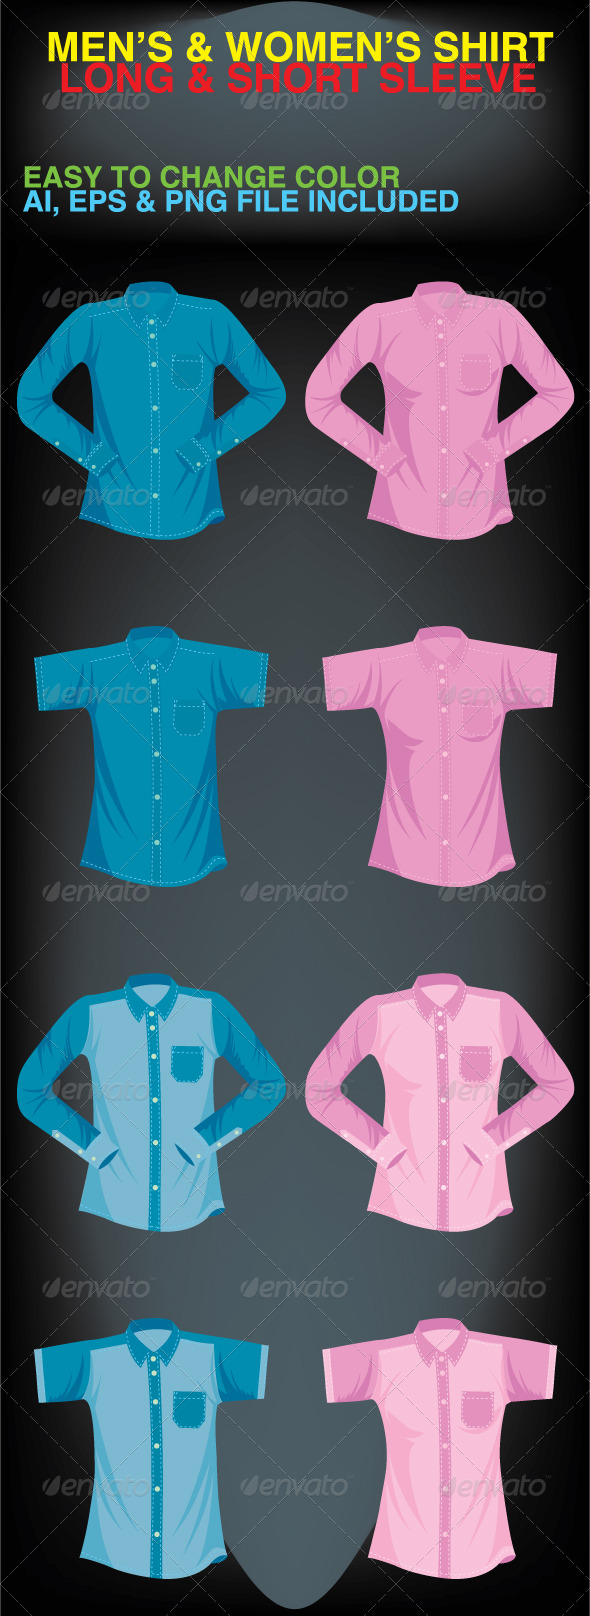 Men's & Women's Shirt - Retail Commercial / Shopping